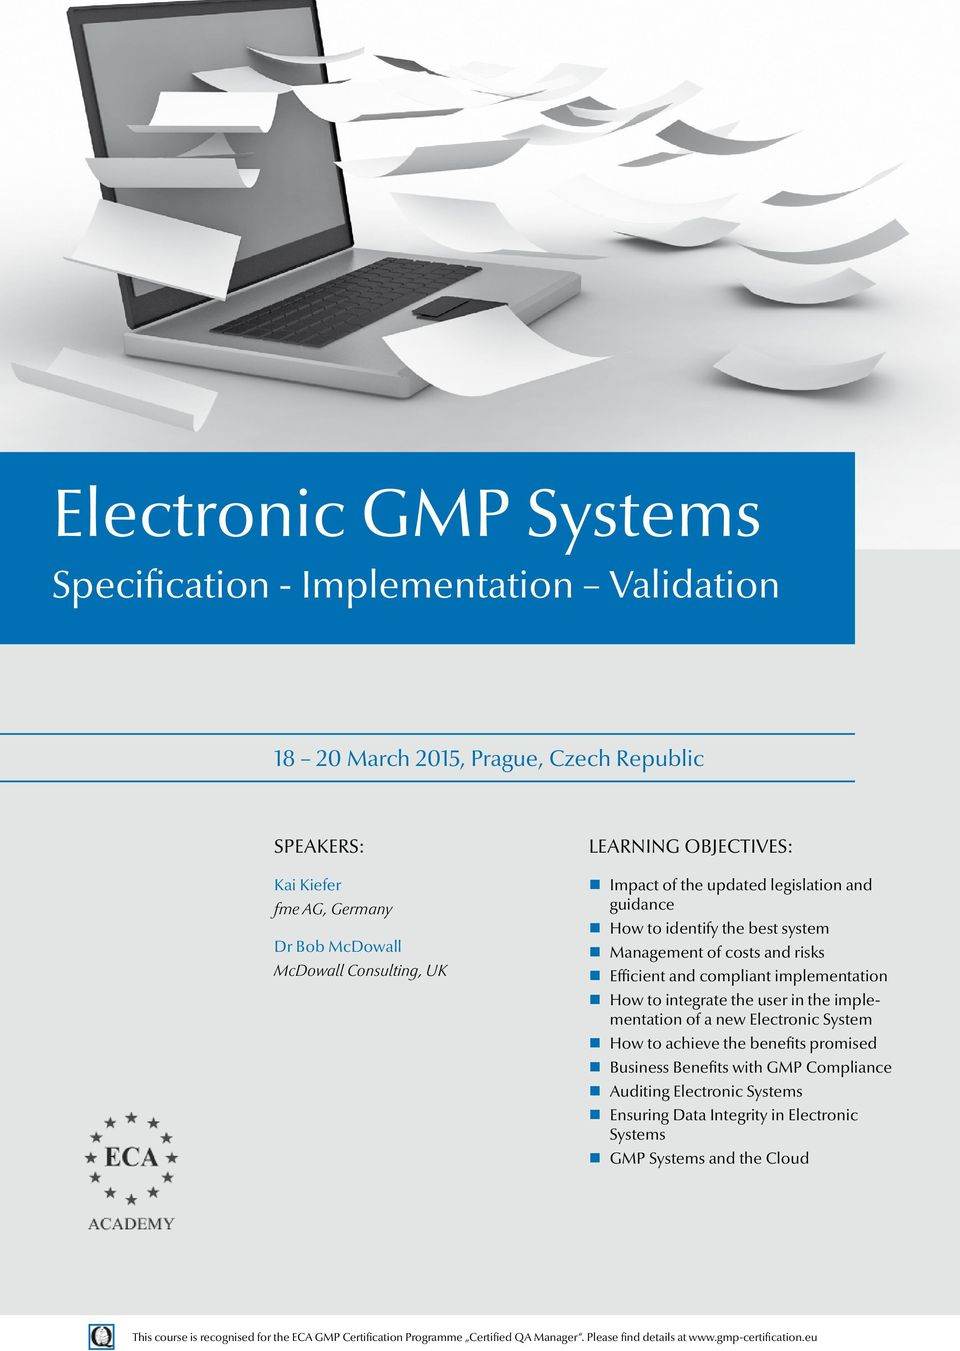 integrate the user in the implementation of a new Electronic System How to achieve the benefits promised Business Benefits with GMP Compliance Auditing Electronic Systems Ensuring Data